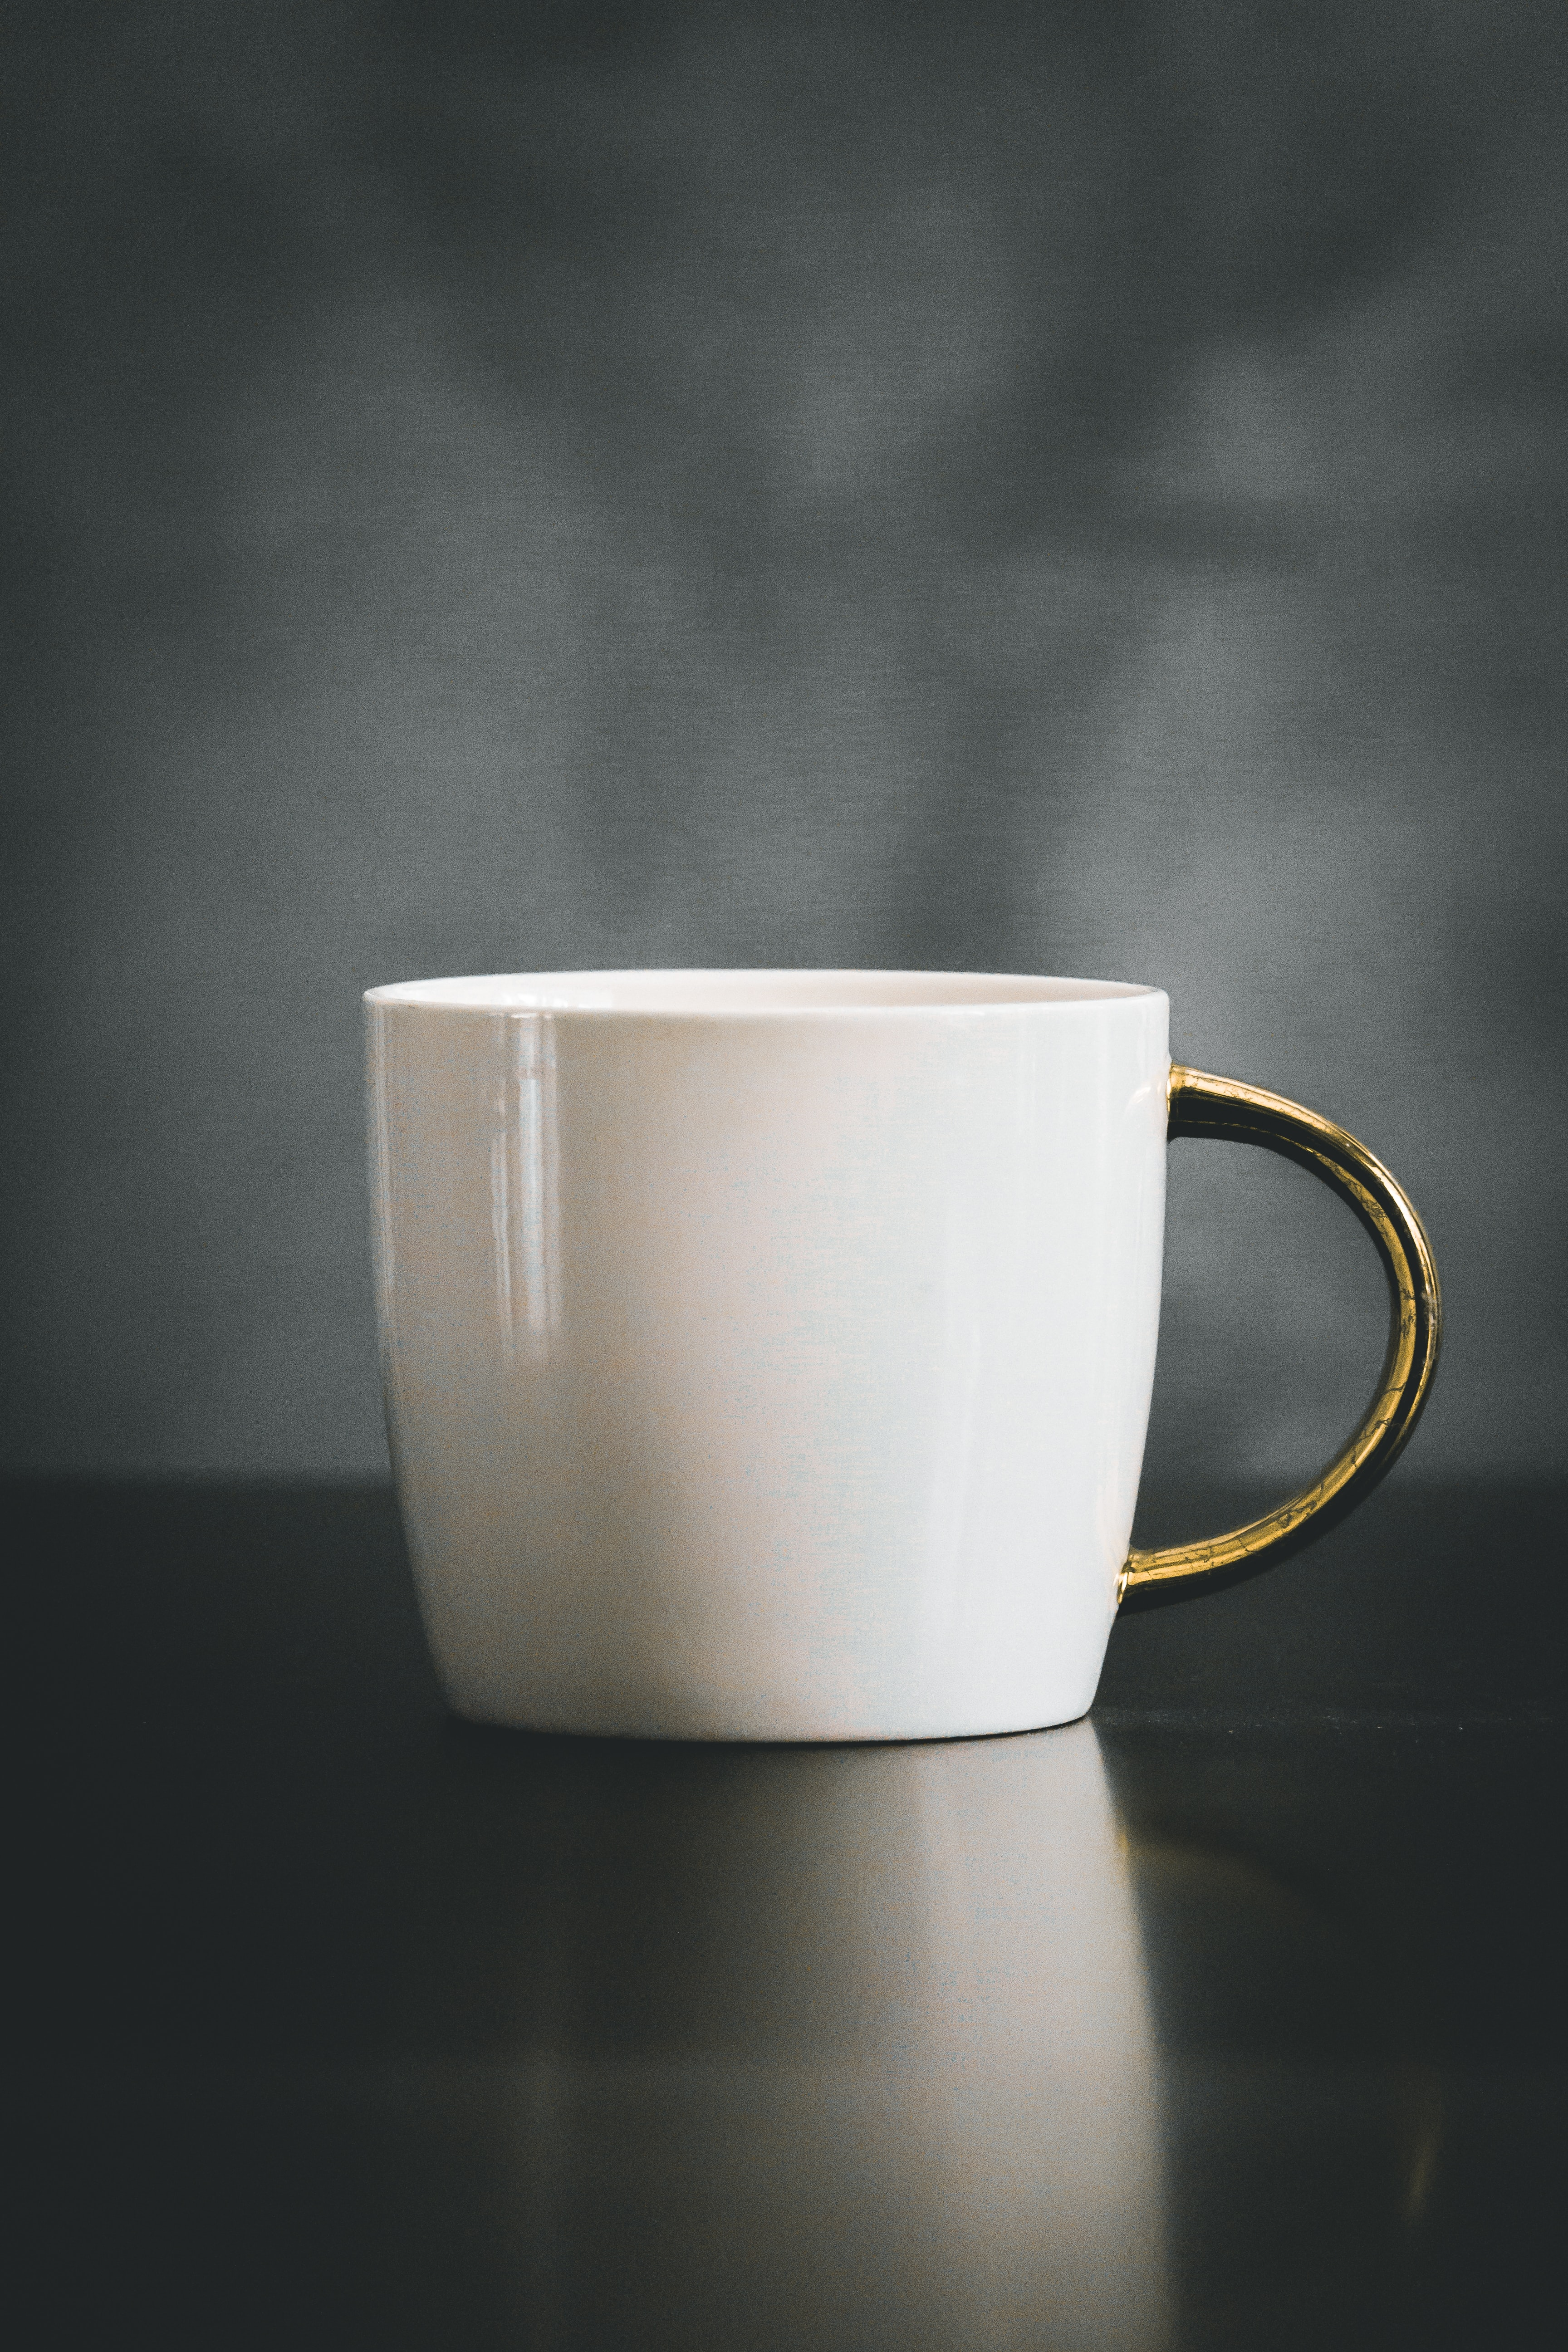 white and beige ceramic mug on black surface